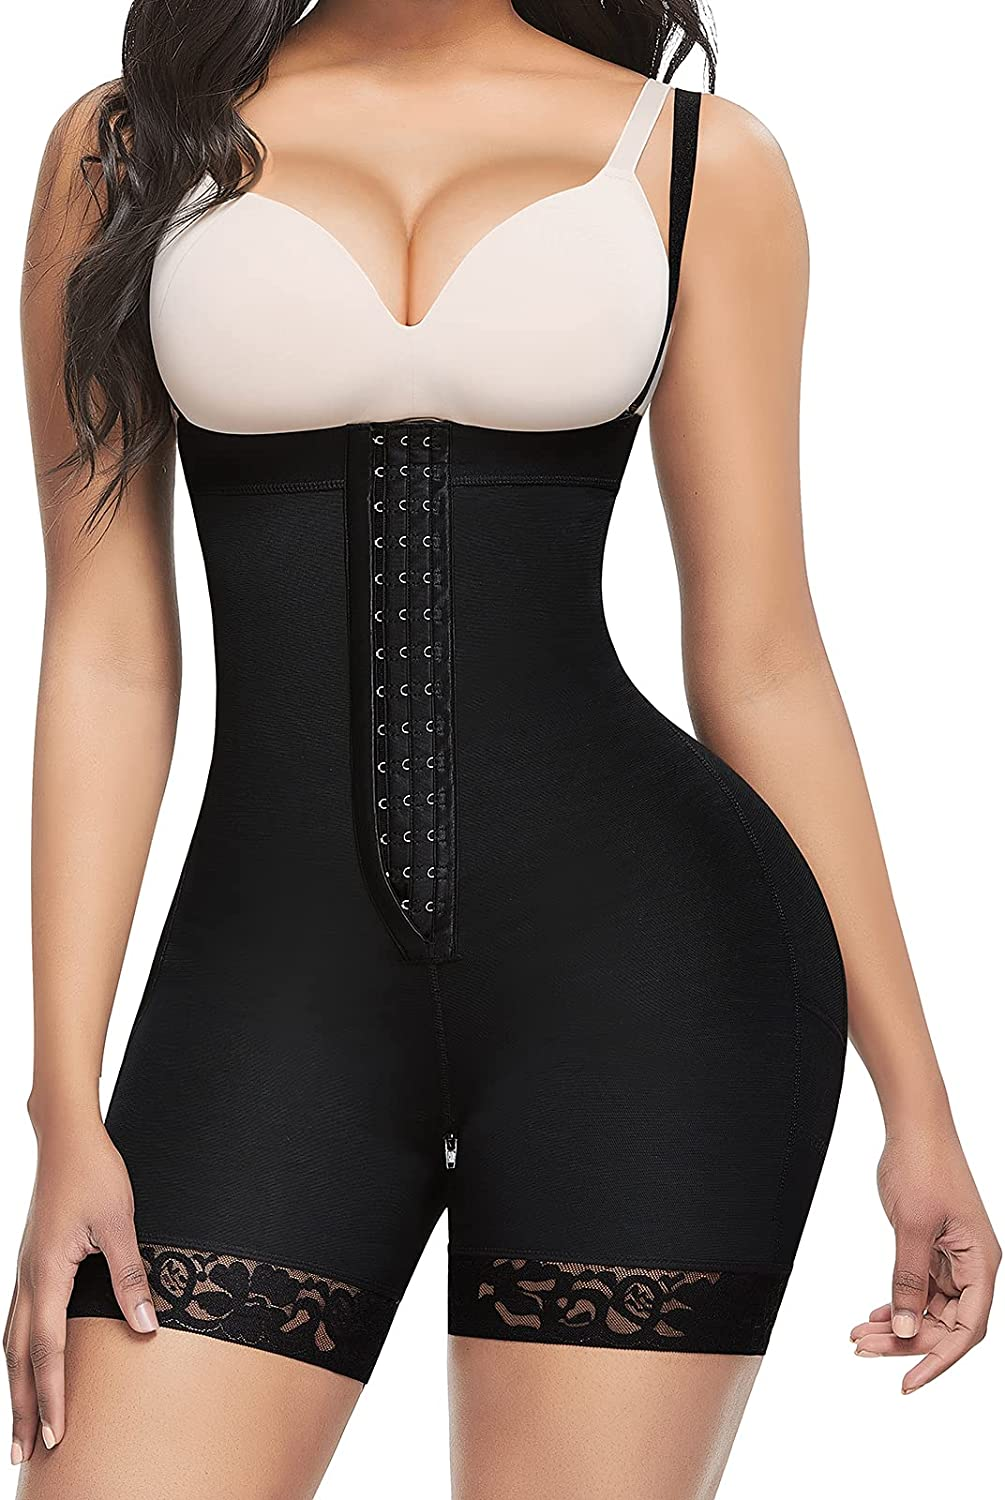 Lover-Beauty Shipping included Women High Compression Body Control Shaper Tummy sale Fa